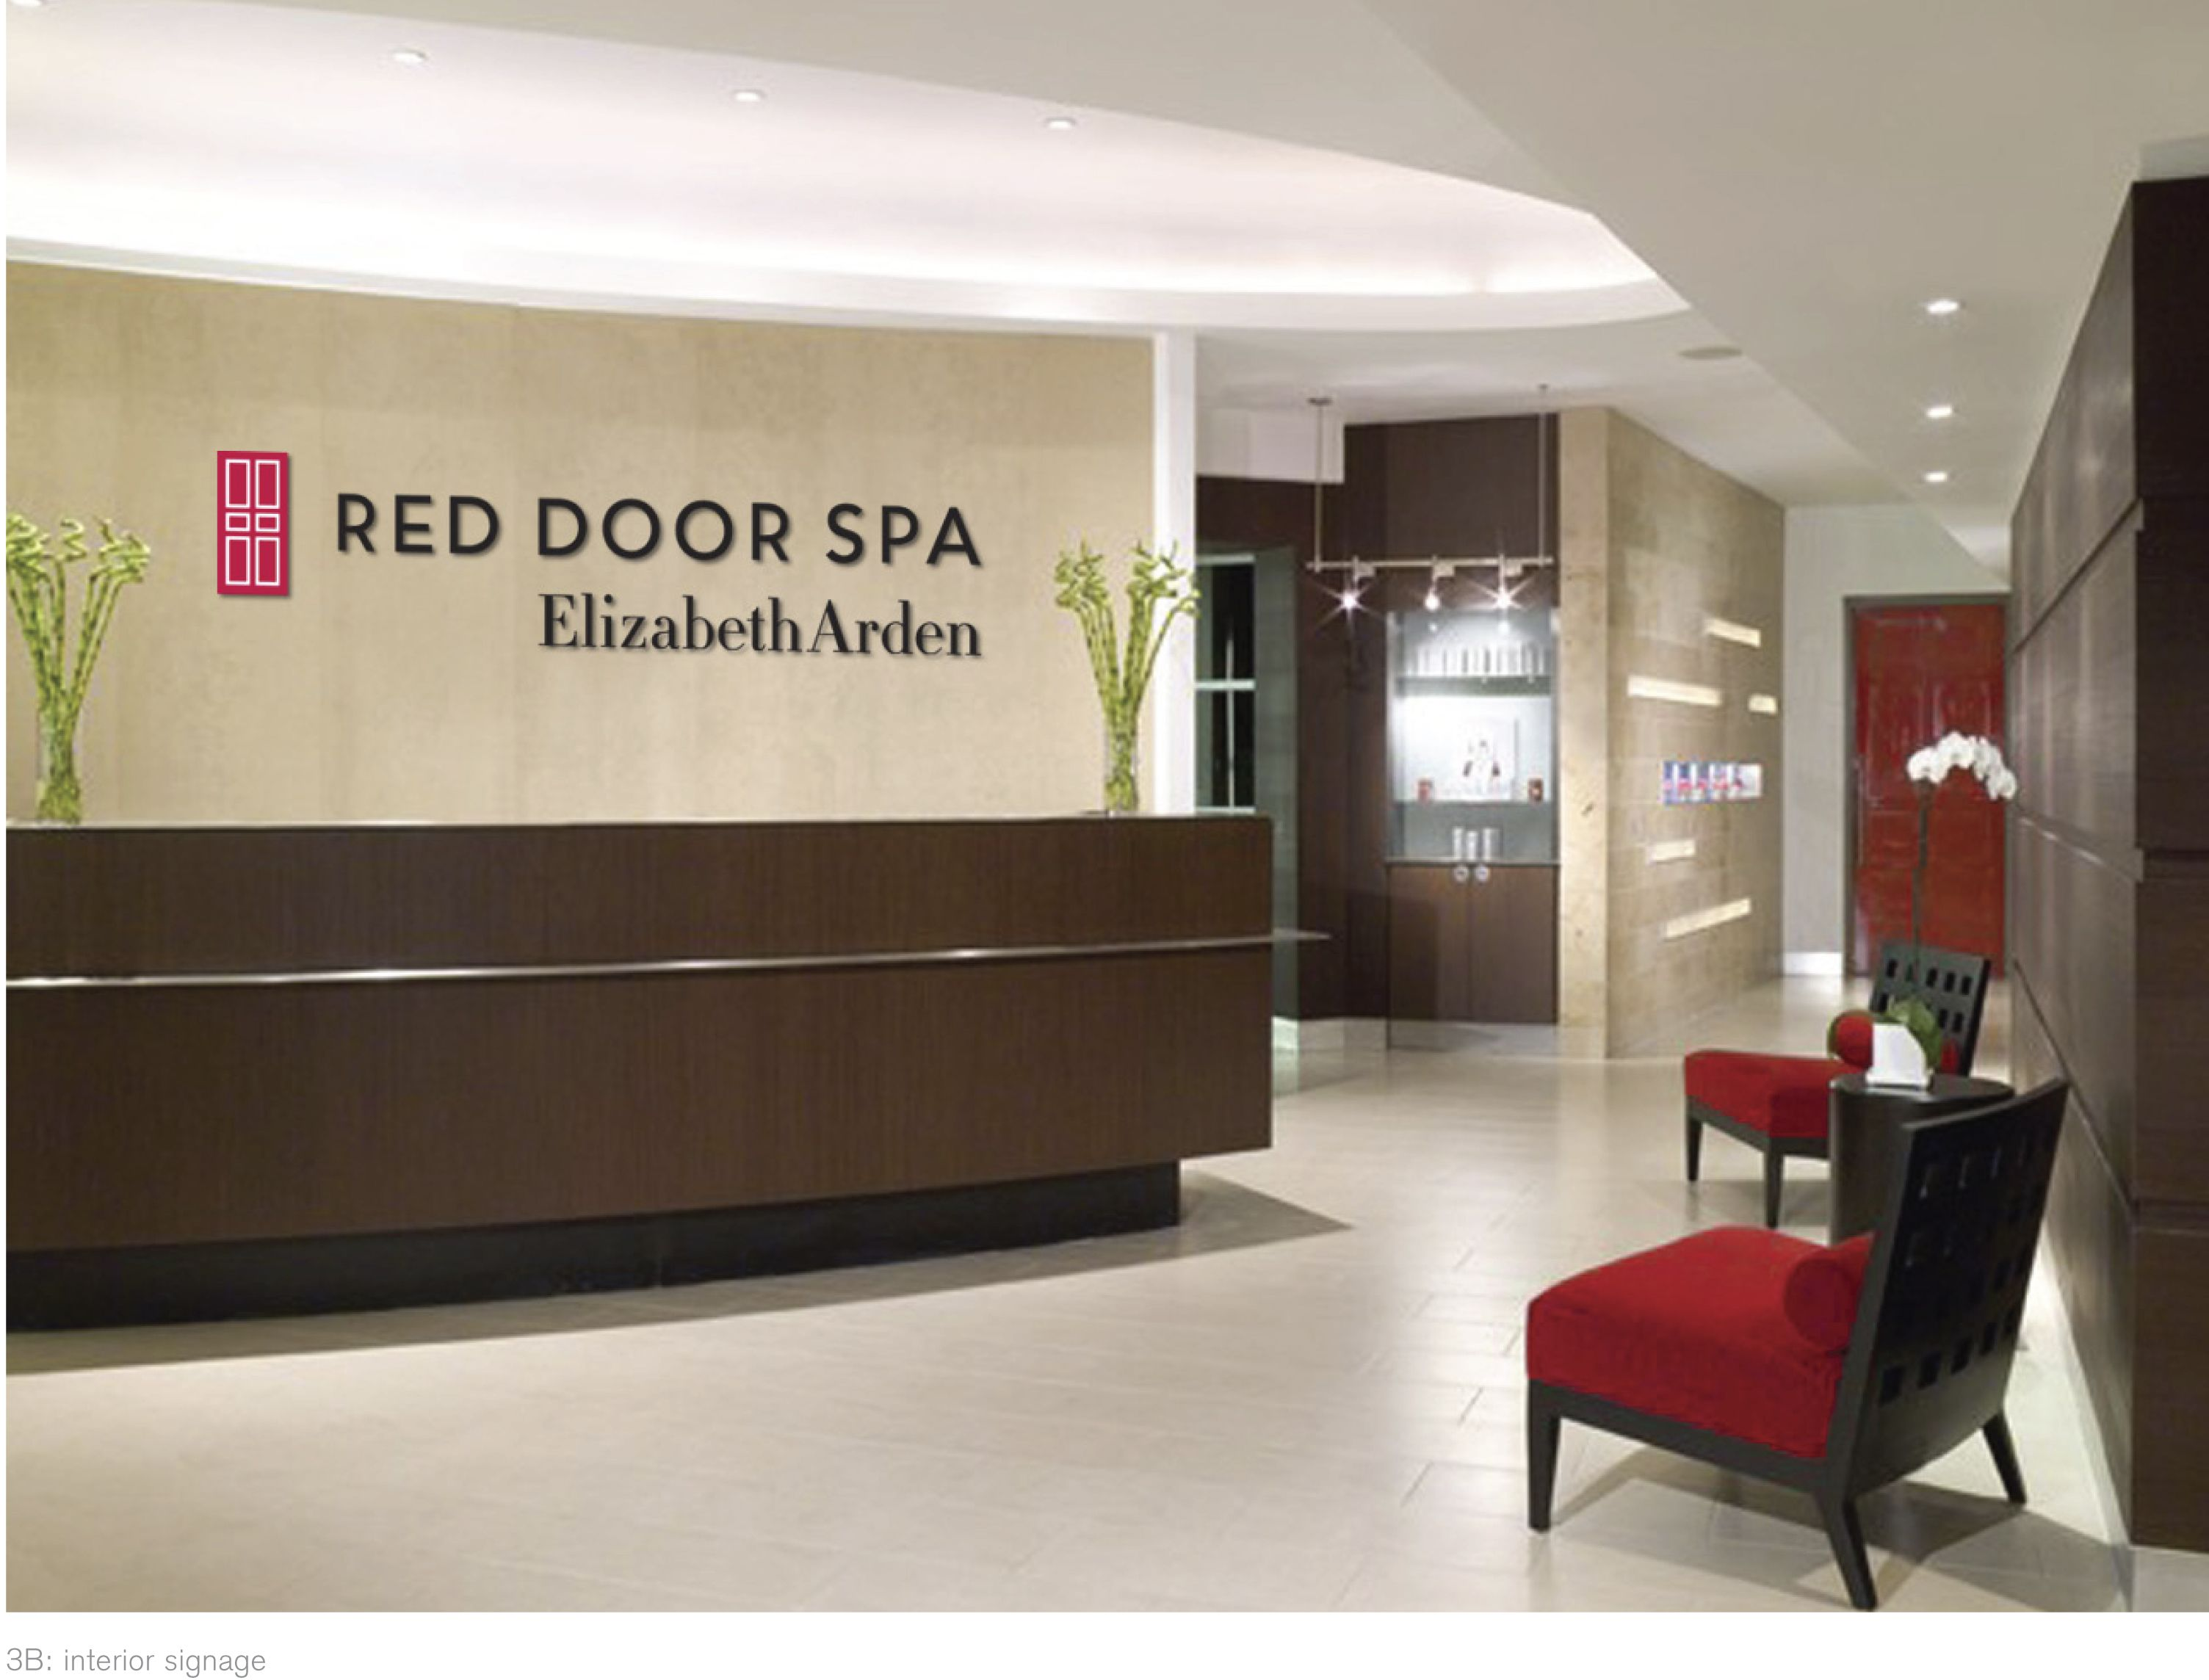 New Red Door Spa Logo Spa Branding Pinterest Spa Logo Spa And